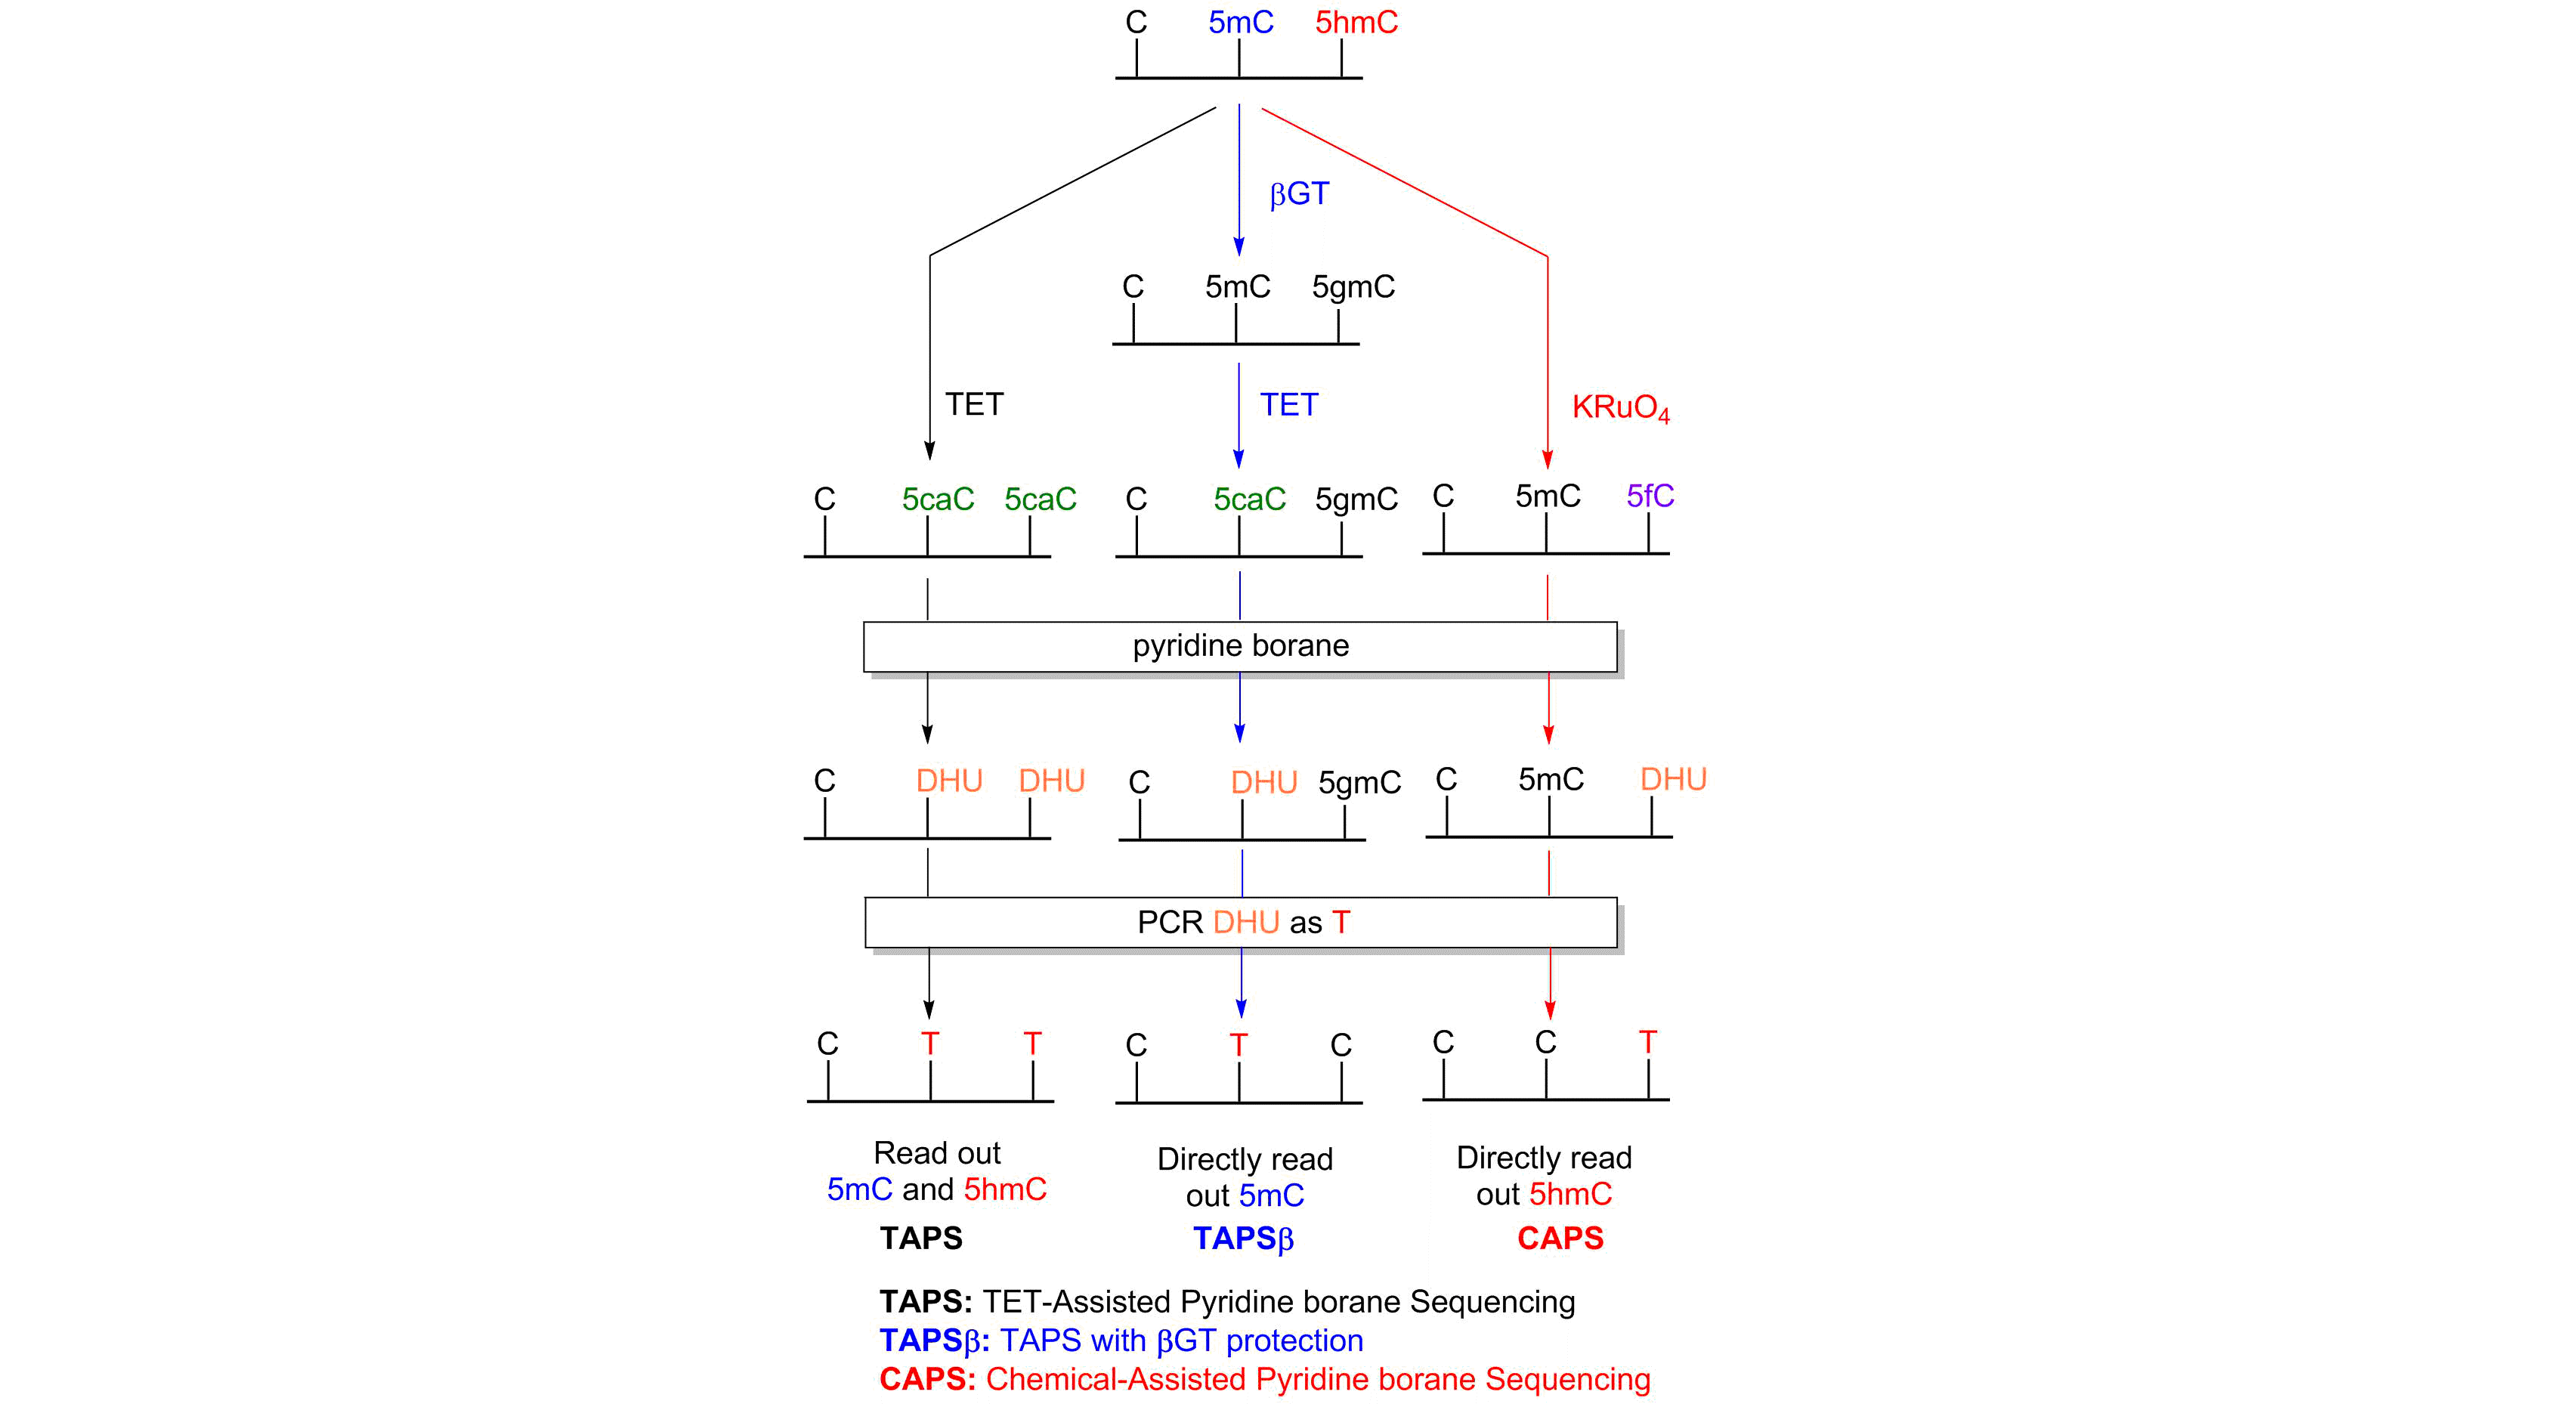 A schematic of the TAPS (TET-assisted pyridine borane sequencing), TAPSbeta (TAPS with beta-glucosyltransferae (betaGT) protection) and CAPS (chemical-assisted pyridine borane sequencing) reactions. In TAPS, 5-methylcytosine (5mC) and 5-hydroxymethylcytosine (5hmC) are converted using TET enzyme to 5-carboxylcytosine (5caC). Pyridine borane converts 5caC to dihydouracil (DHU), which is converted to thymine (T) during PCR. Cytosine (C) to T transitions during TAPS therefore read out cytosines that were originally modified with either 5mC or 5hmC. In TAPSbeta, betaGT converts 5hmC (but not 5mC) to 5gmC. TET enzyme converts 5mC (but not 5gmC) to 5caC, which is then converted using pyridine borane to DHU (leaving 5gmC untouched). In the PCR step, DHU is converted to T and 5gmC is converted to C. C to T transitions during TAPSbeta therefore read out cytosines that were originally modified with 5mC but not those originally modified with 5hmC. In CAPS, potassium perruthenate is used to convert 5hmC (but not 5mC) to 5-formlycytosine (5fC). Pyridine borane converts 5fC to DHU, which is then converted to T during PCR. C to T transitions during CAPS therefore read out cytosines that were originally modified with 5hmC but not those originally modified with 5mC.